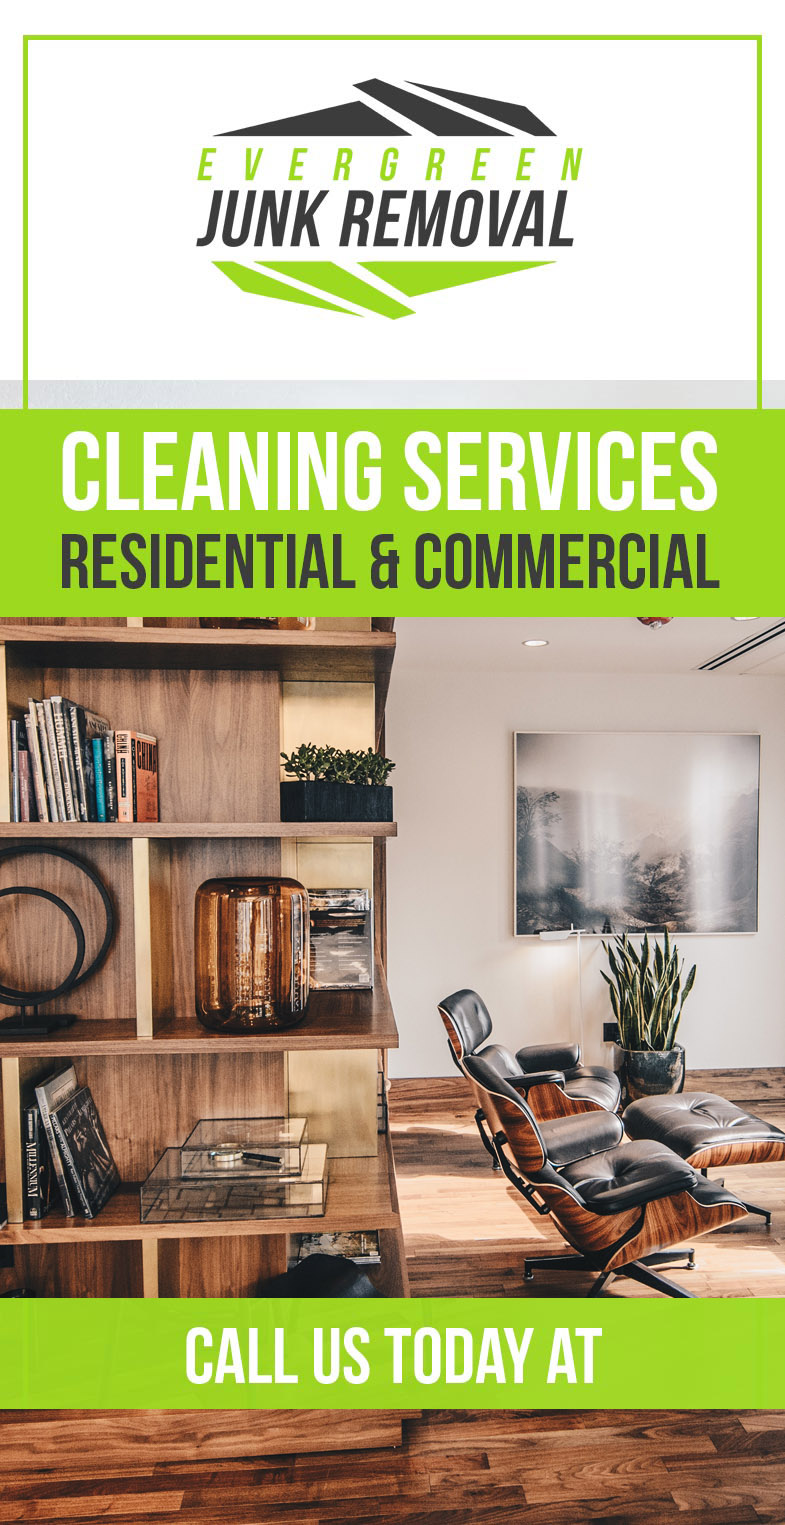 Washington Park Commercial Cleaning